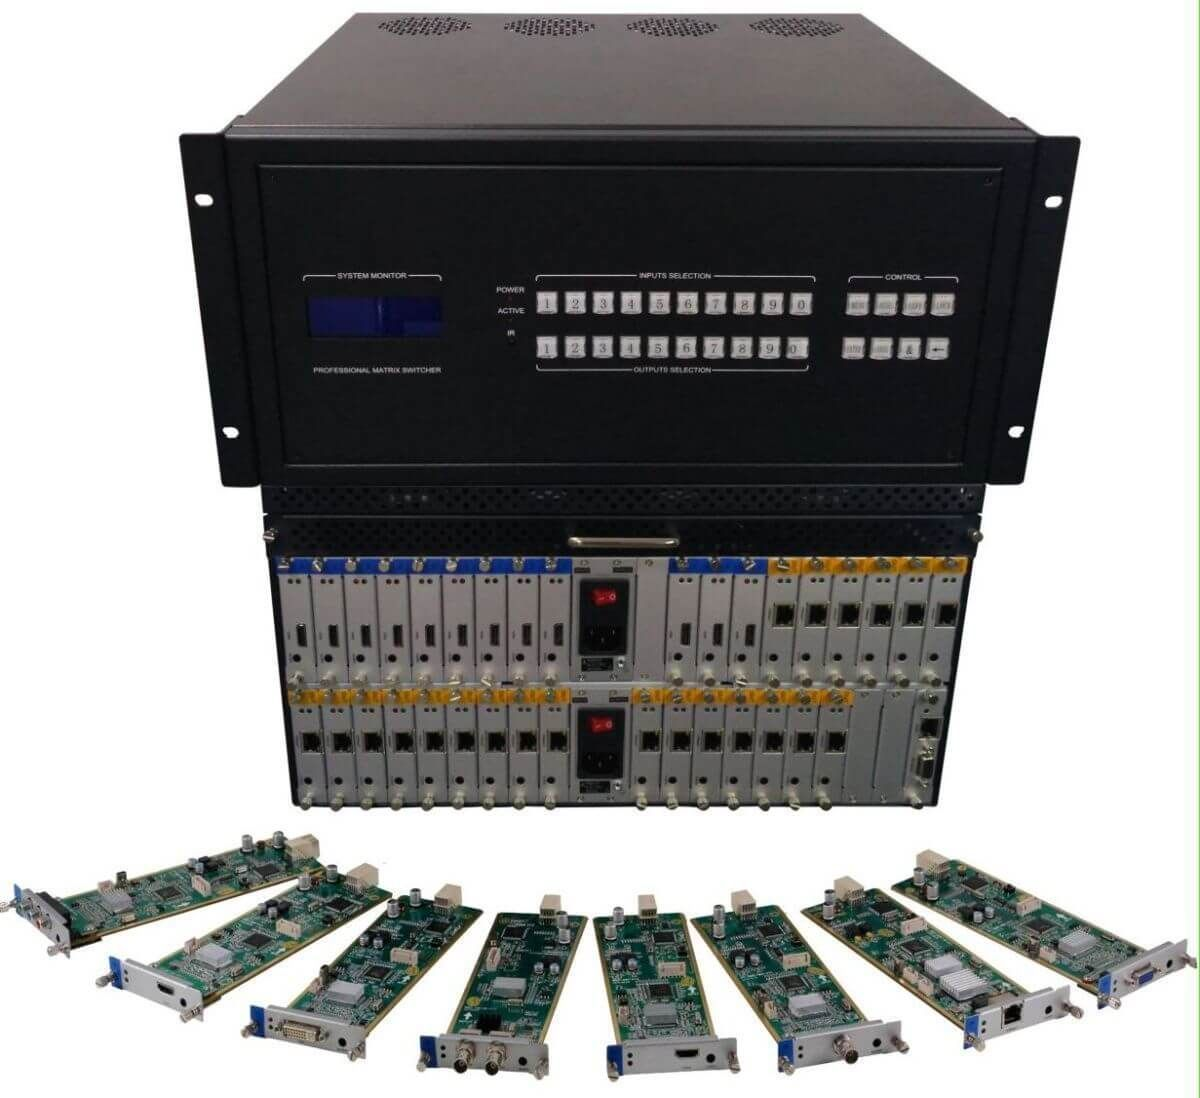 12x28 HDMI Matrix Switcher w/Video Wall Processor, 100ms Switching, Scaling & Separate Audio